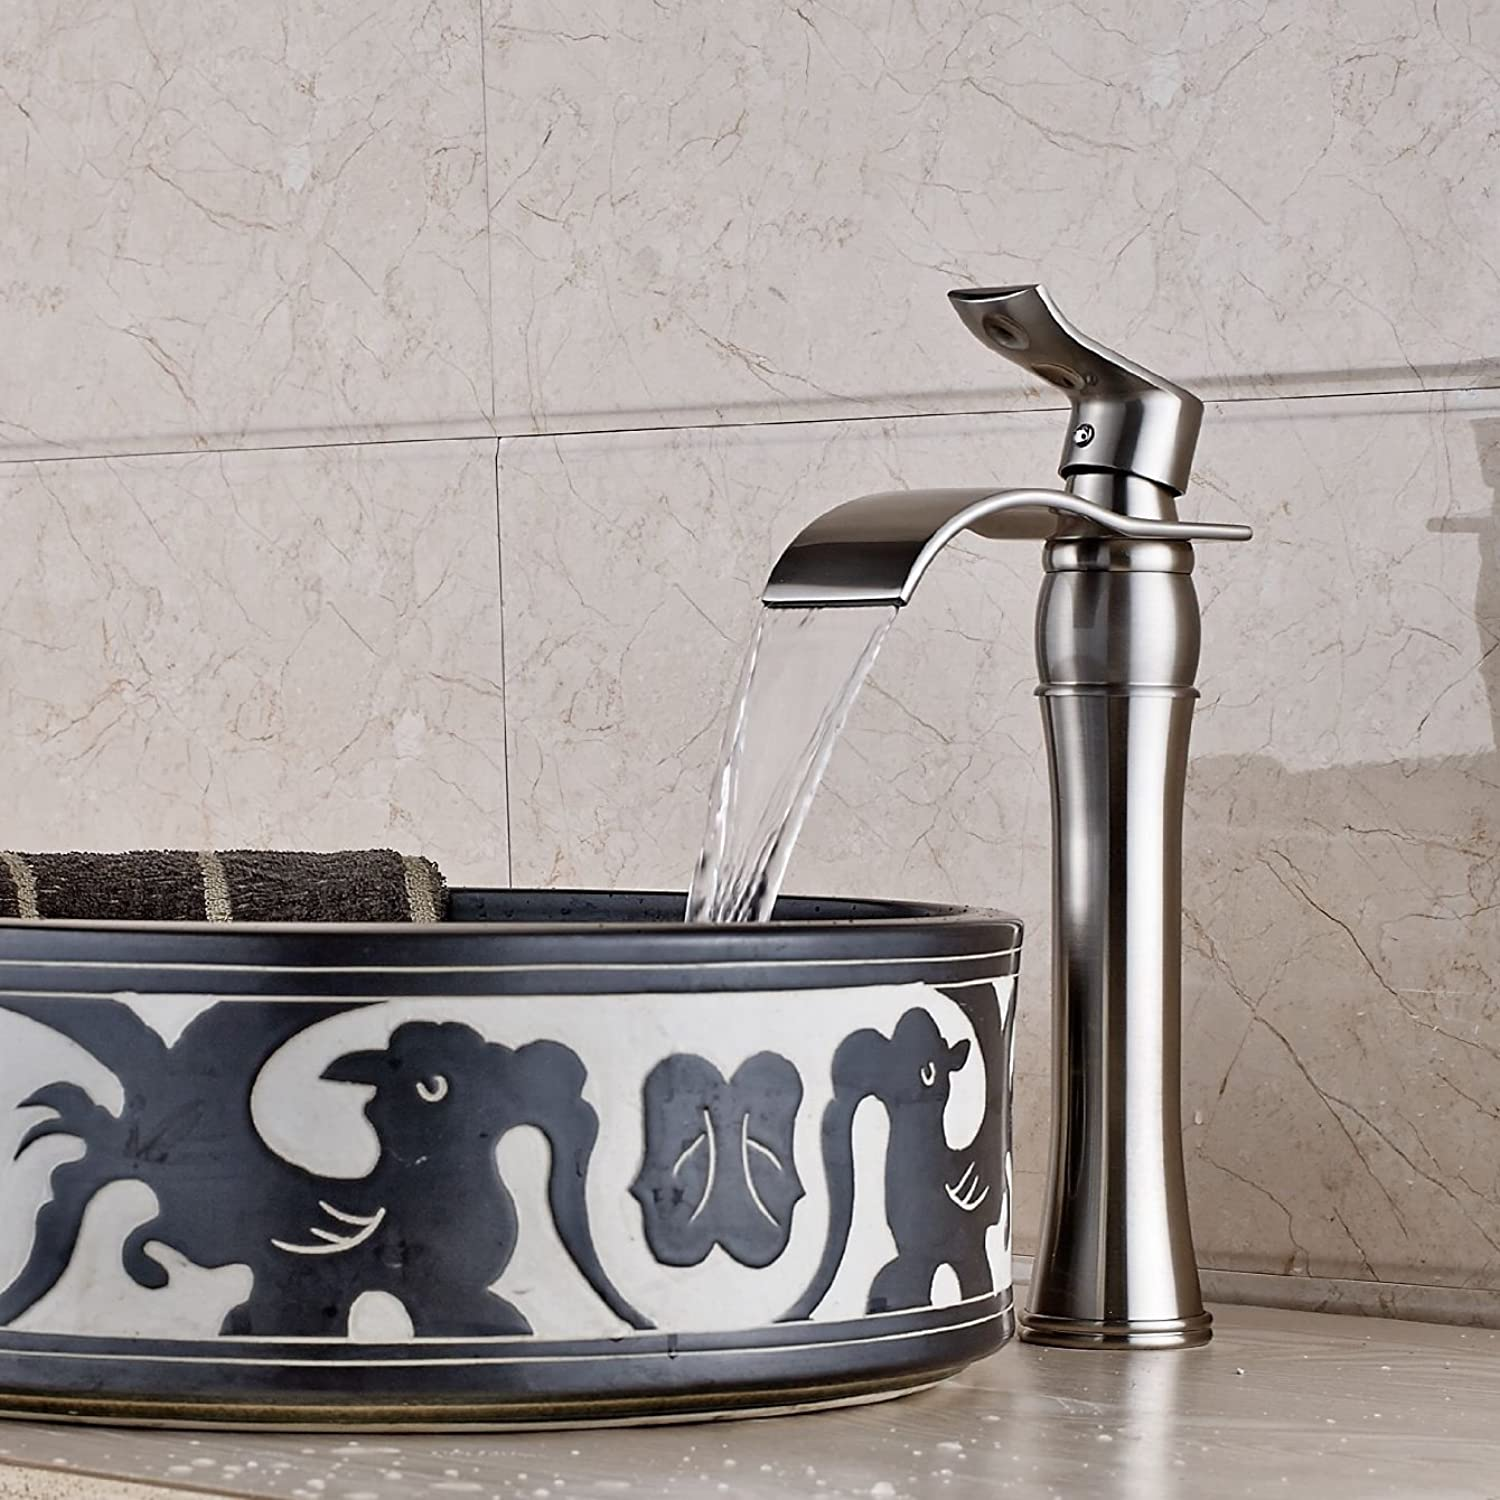 Inchant Single Lever Brushed Nickel Waterfall Bathroom Sink Faucet Brass Mixer Tap Deck Mount bath tub Vanity faucet Widespread Lavatory Faucets Tall body